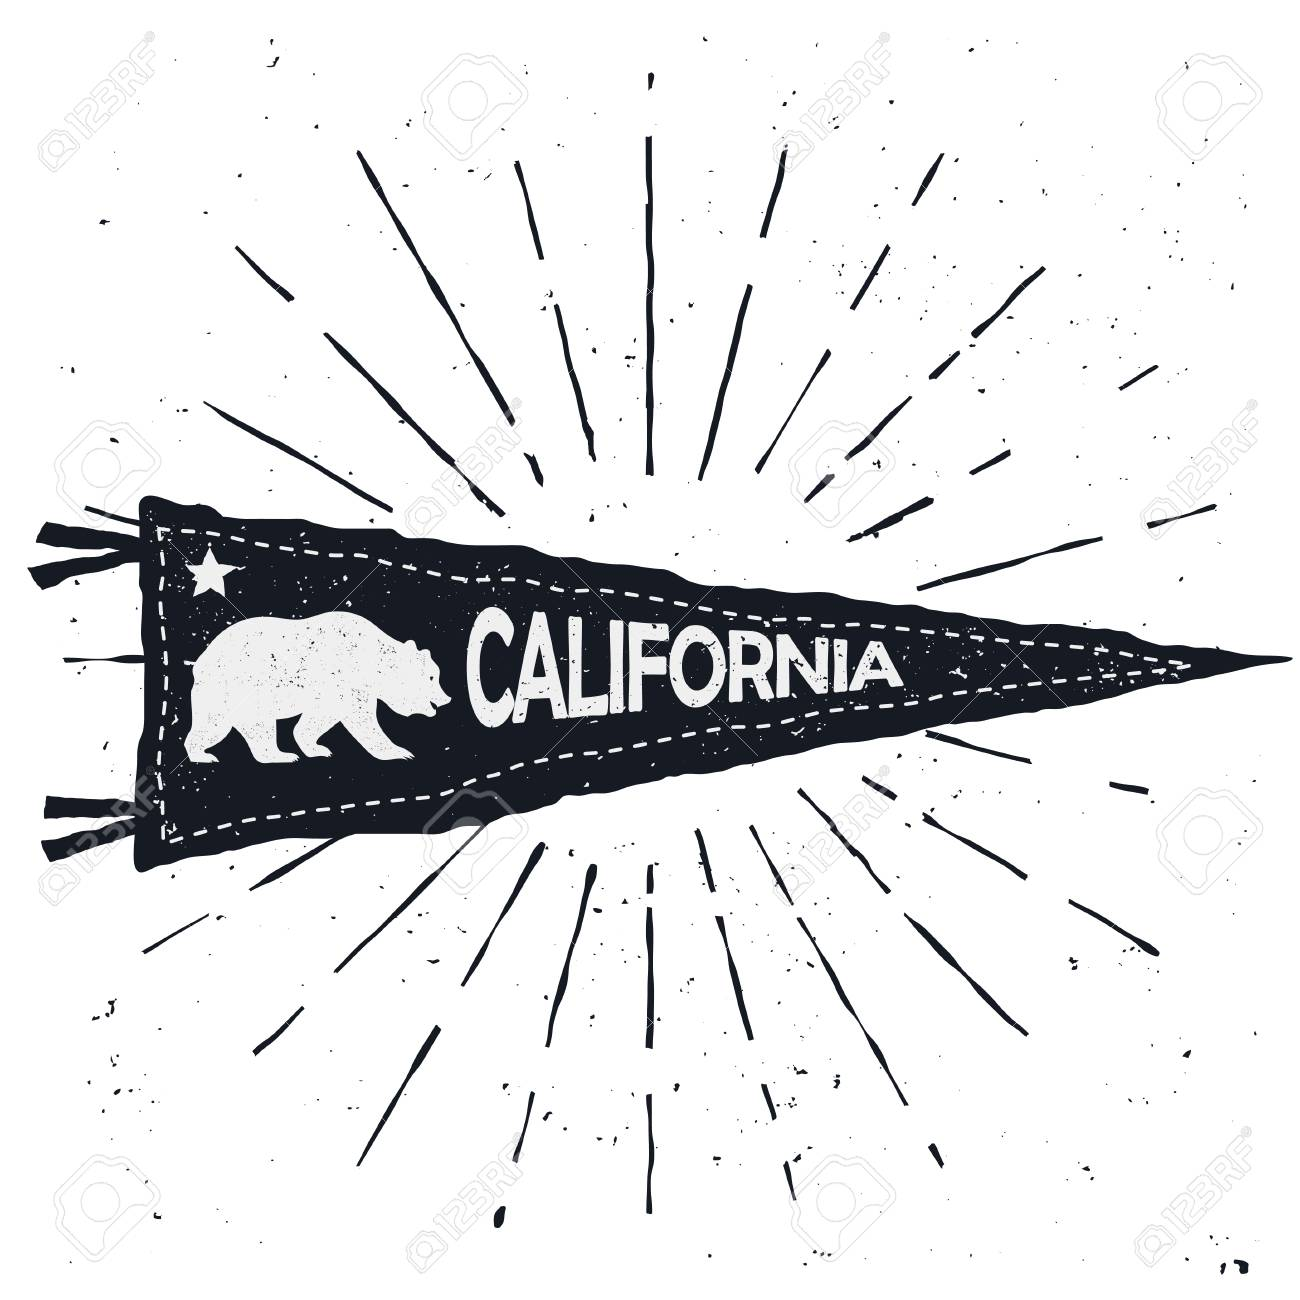 Adventure Pennant Vintage Hand Drawn Flag California Sign Vector Stock